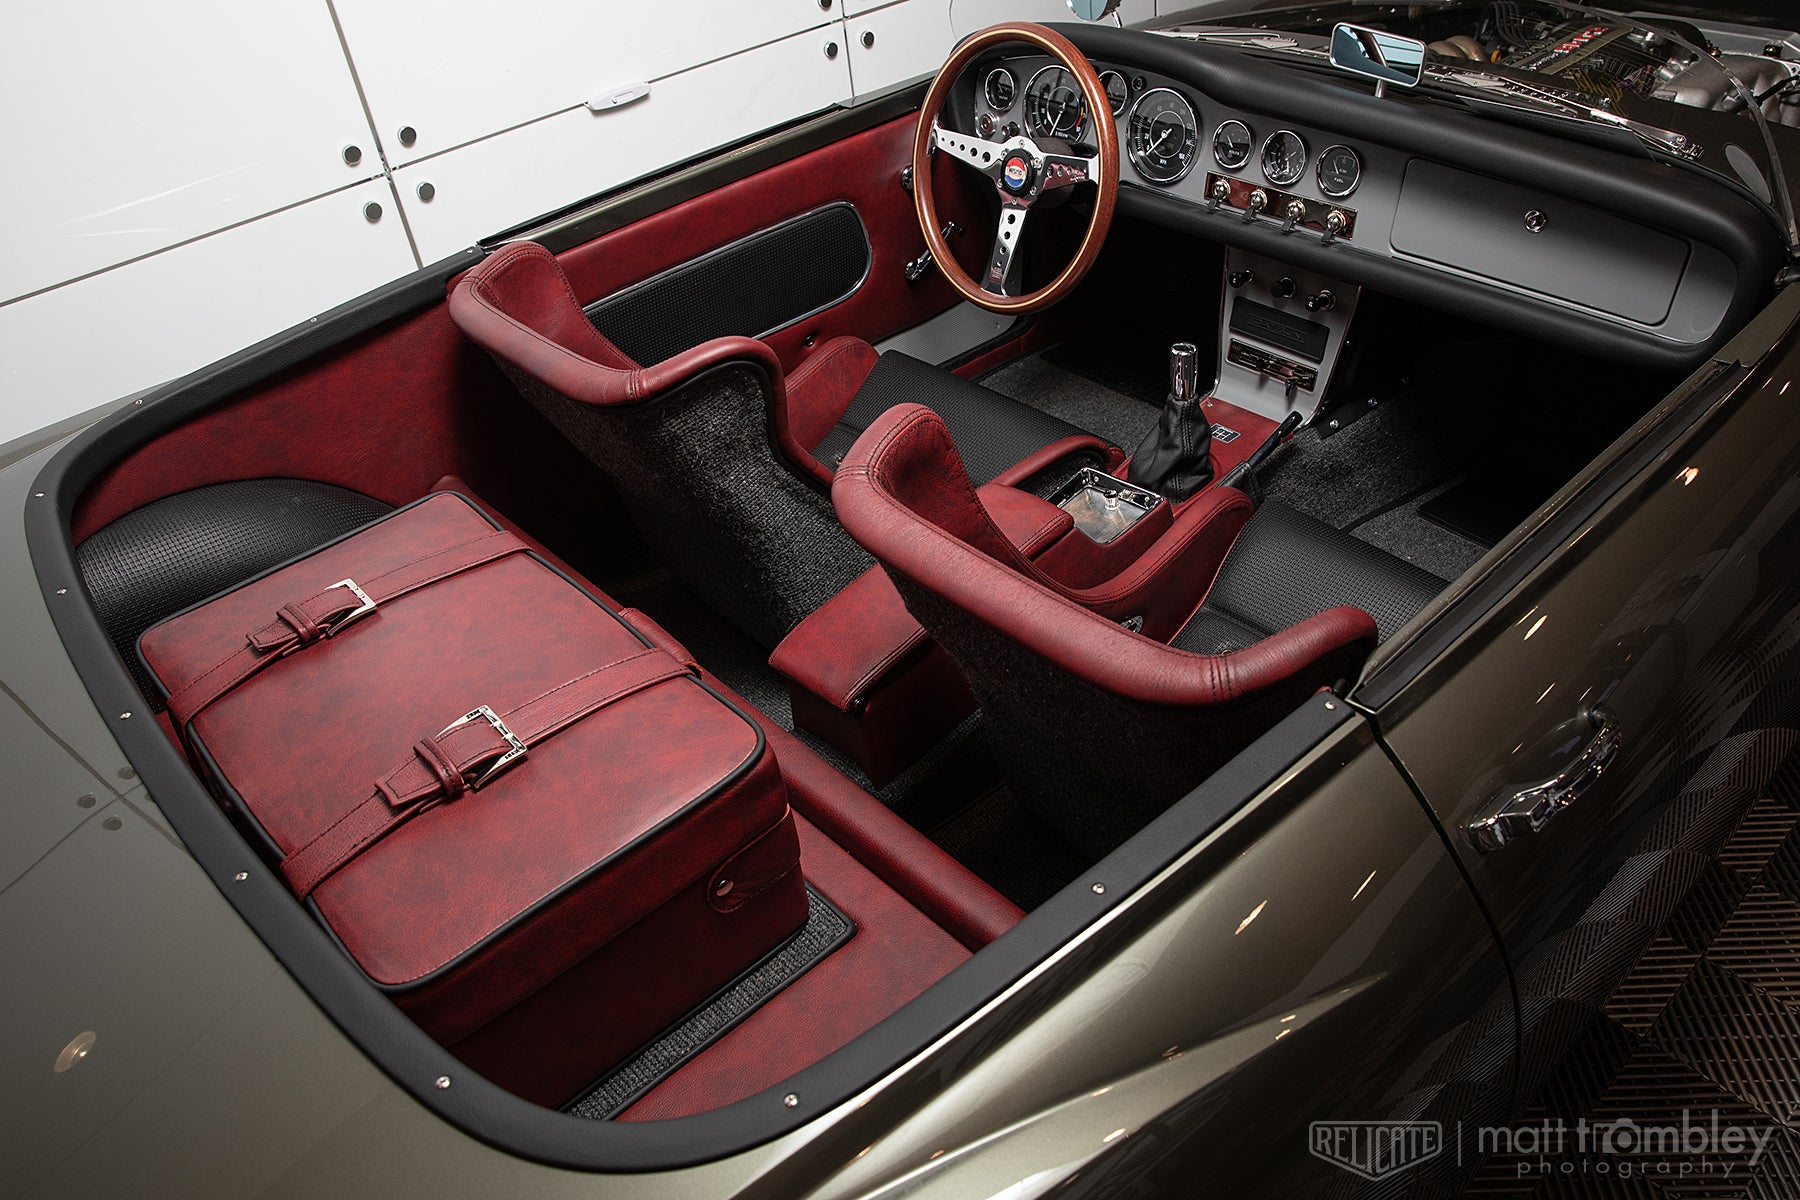 1966 Datsun Fairlady Roadster with Moroccan Distressed Leather Interior